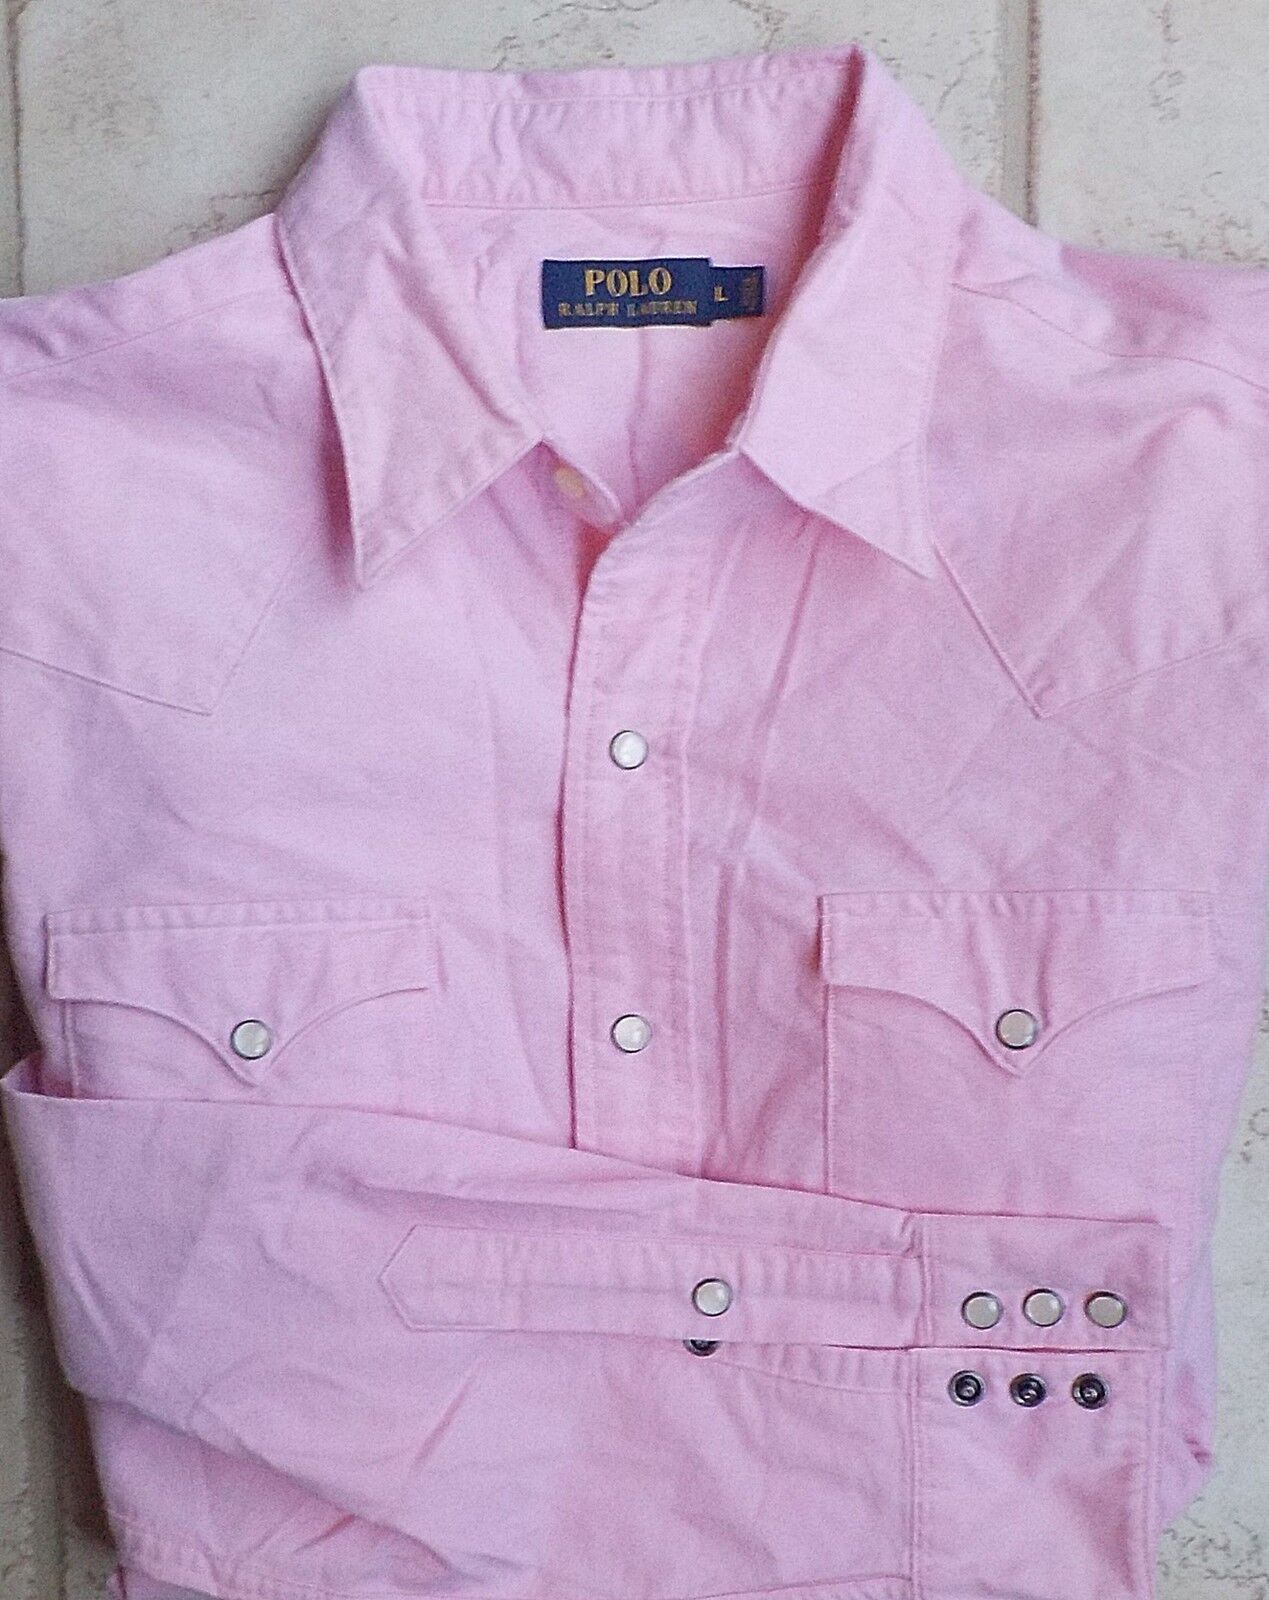 Polo Ralph Lauren  100% Cotton Western Snap Close Pinpoint Oxford Shirt Pink LG